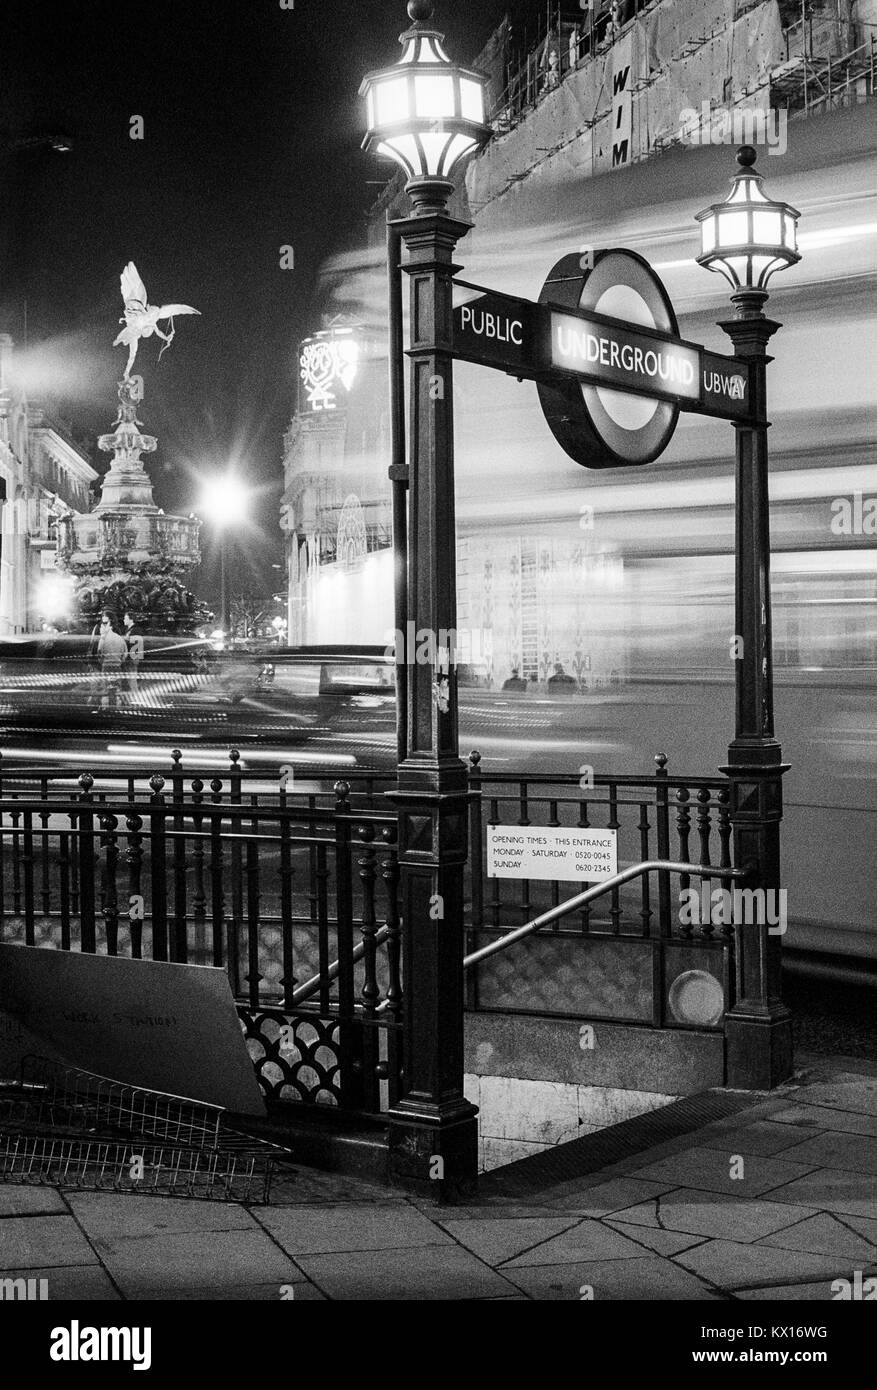 Public subway underground entrance at Piccadilly Circus with london Transport bus passing and Eros statue, at night, - Stock Image